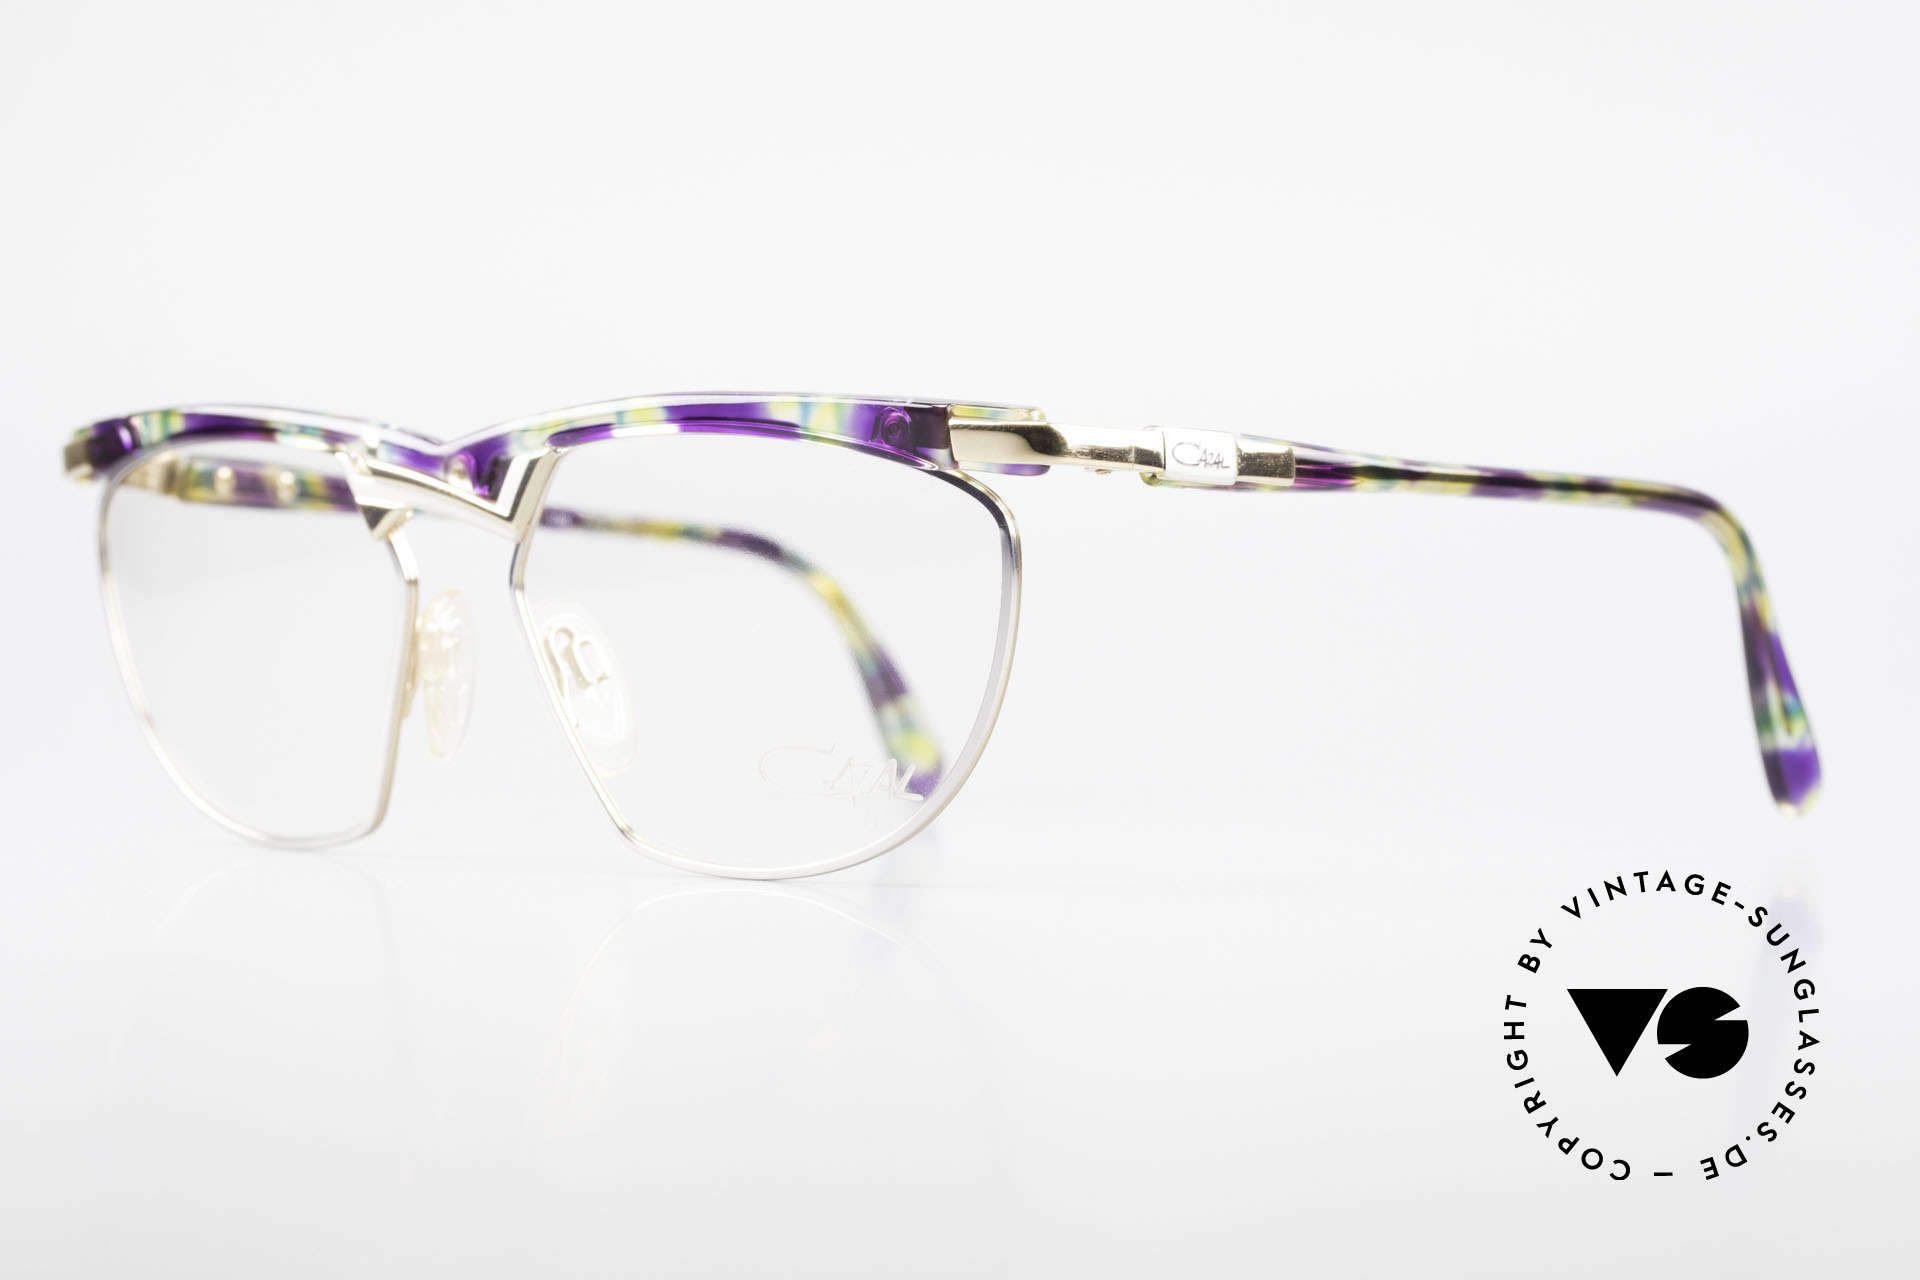 Cazal 252 90's Original True Vintage, 1.class craftsmanship (truly made in Germany), L size!, Made for Men and Women